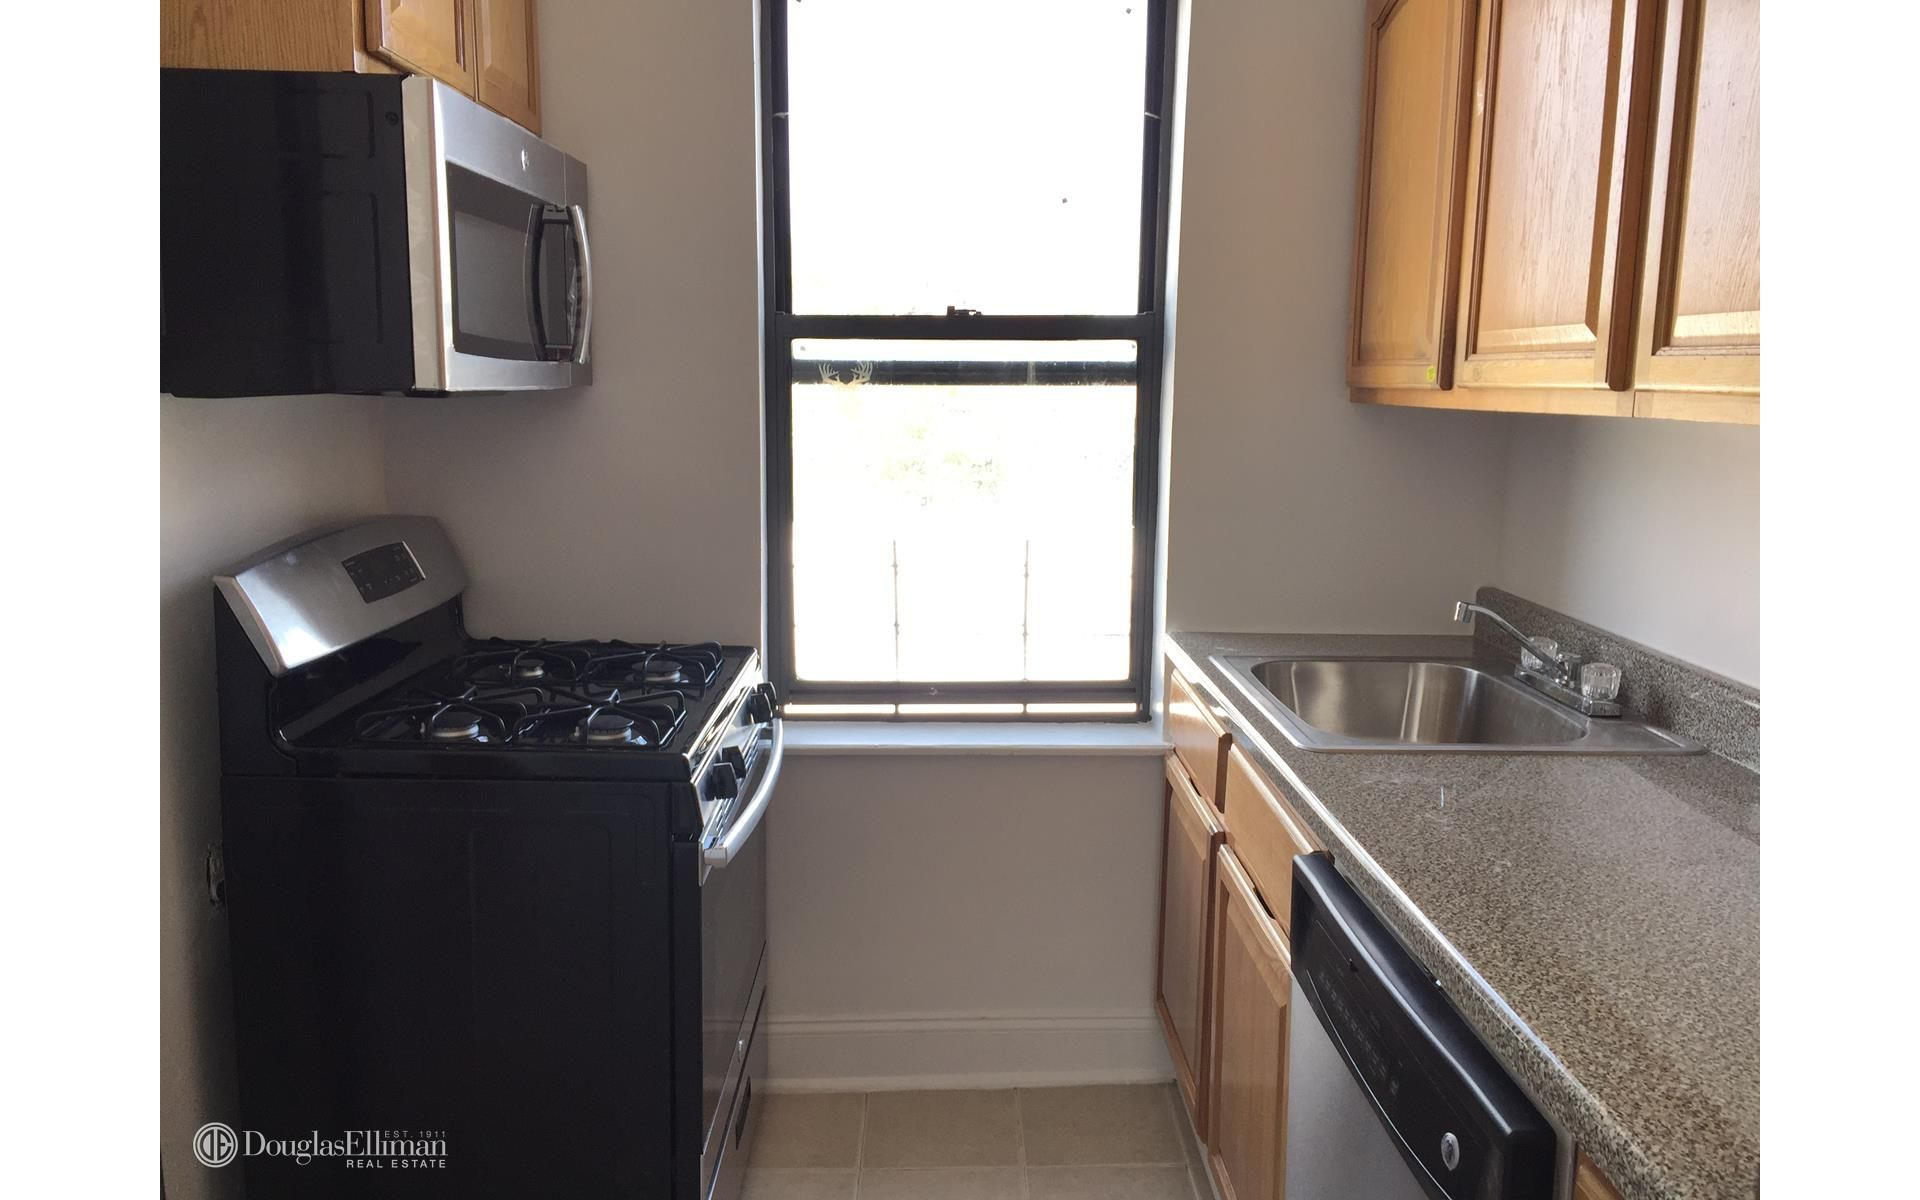 Kitchen cabinets 65th street brooklyn -  3726 65th St Apt 2c Photo 5 Elliman 2601648